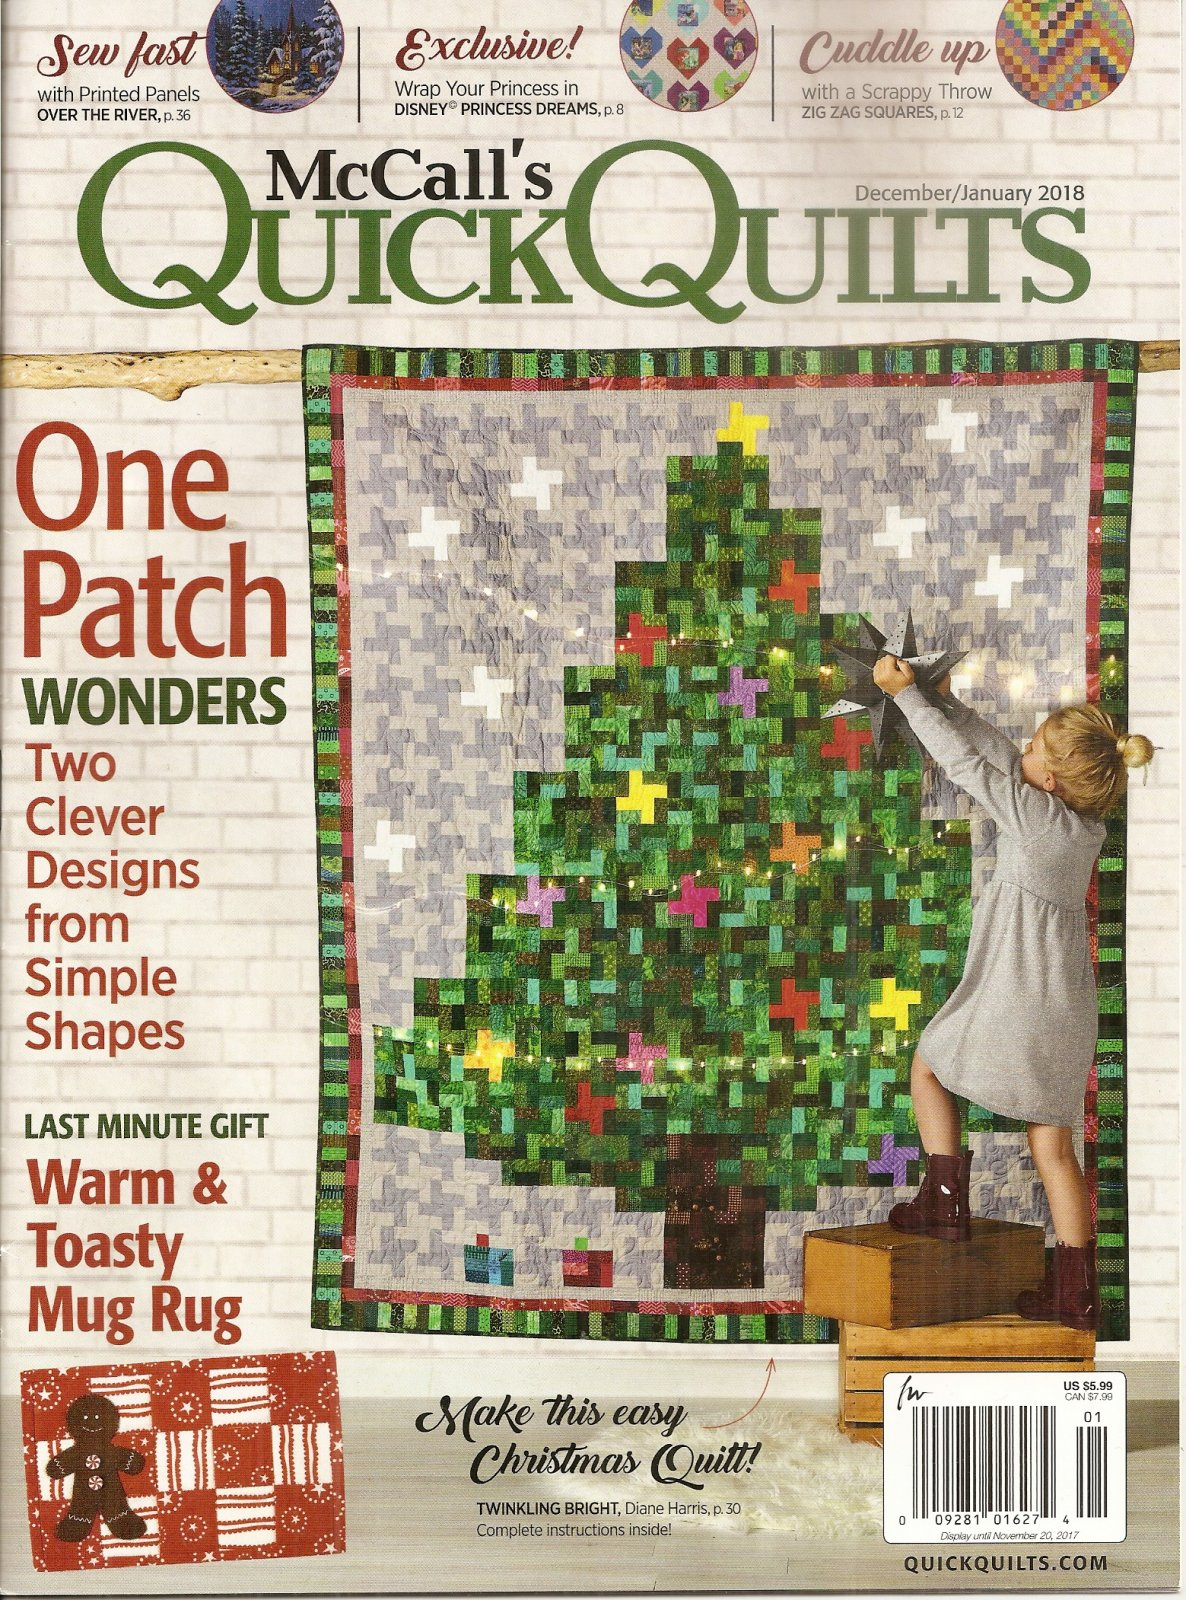 McCall's Quick Quilts December/January 2018